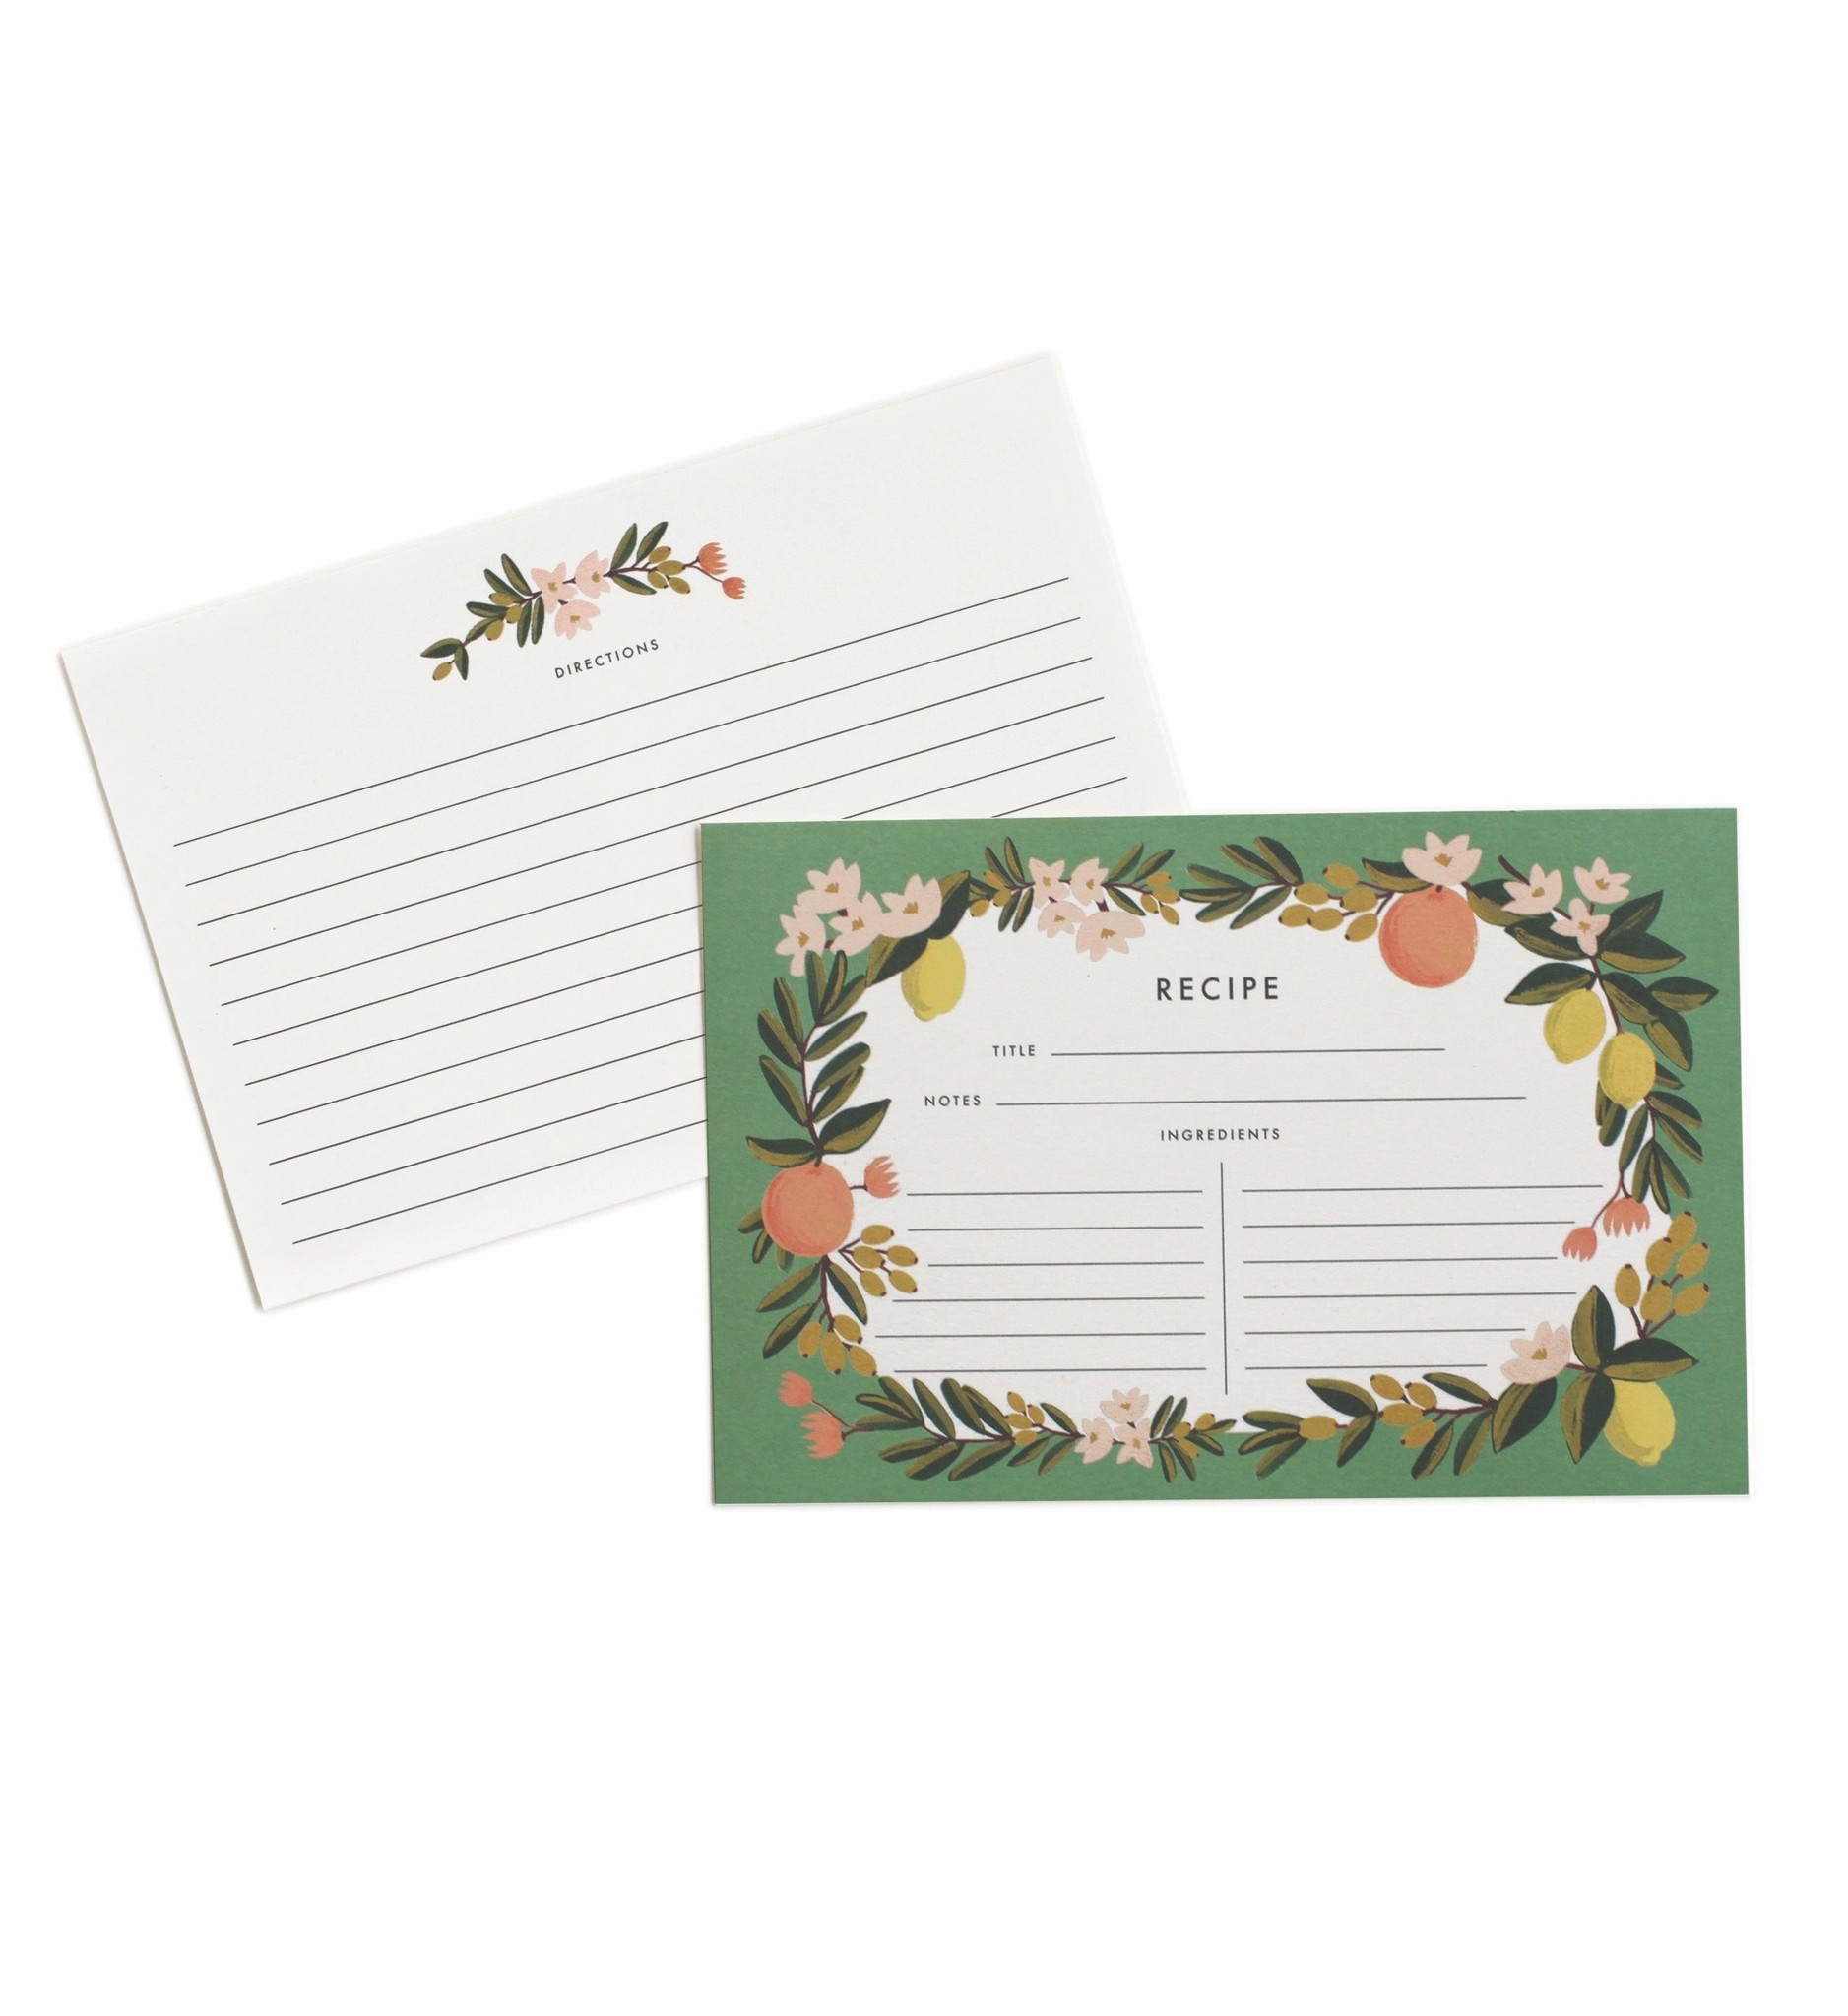 RIFLE PAPER COMPANY'S CITRUS FLORAL RECIPE CARDS - PACK OF 12-1